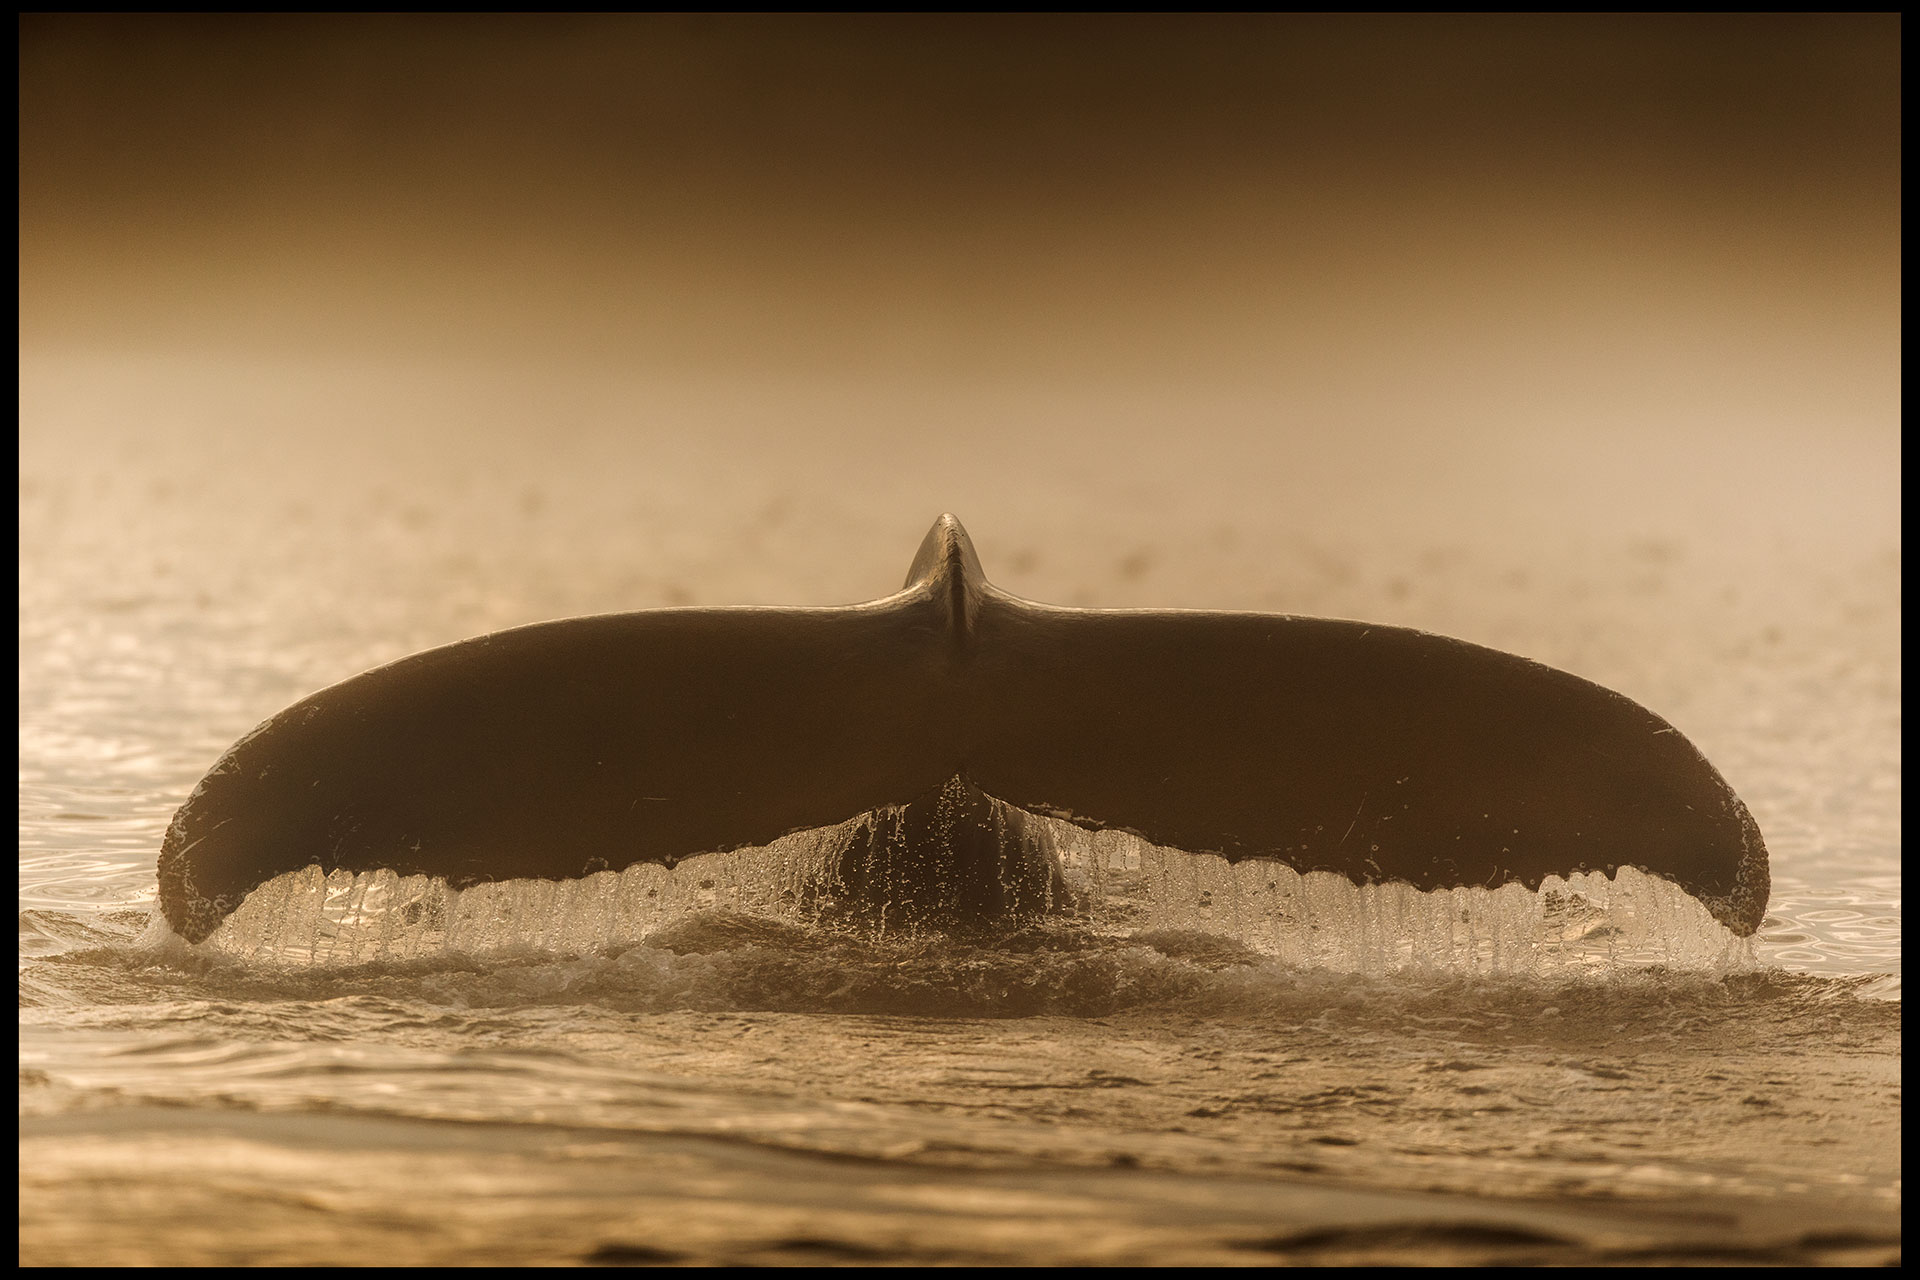 whales_july2014_part2-raw-0230